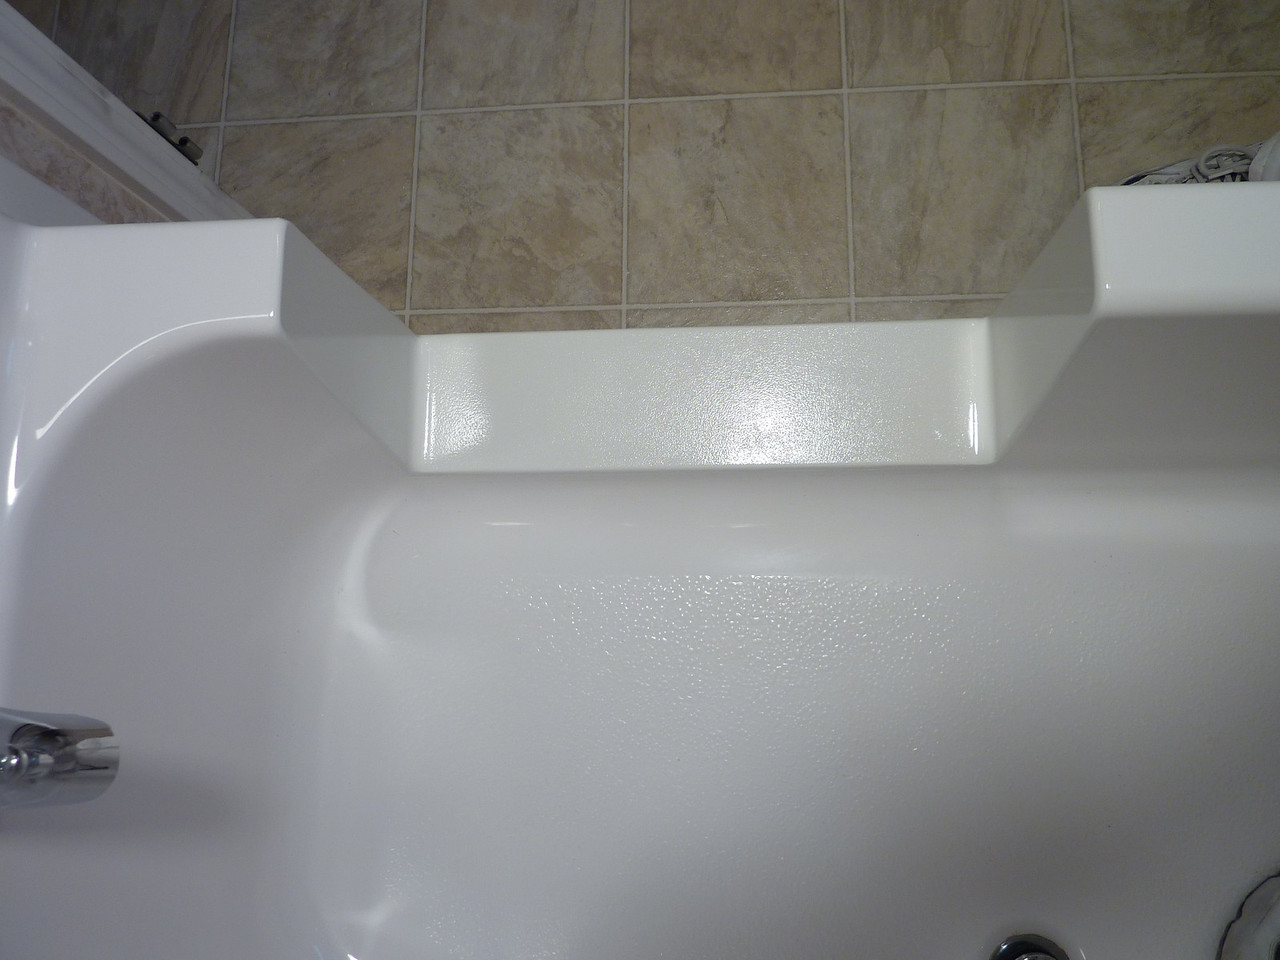 Finished view from inside the tub.